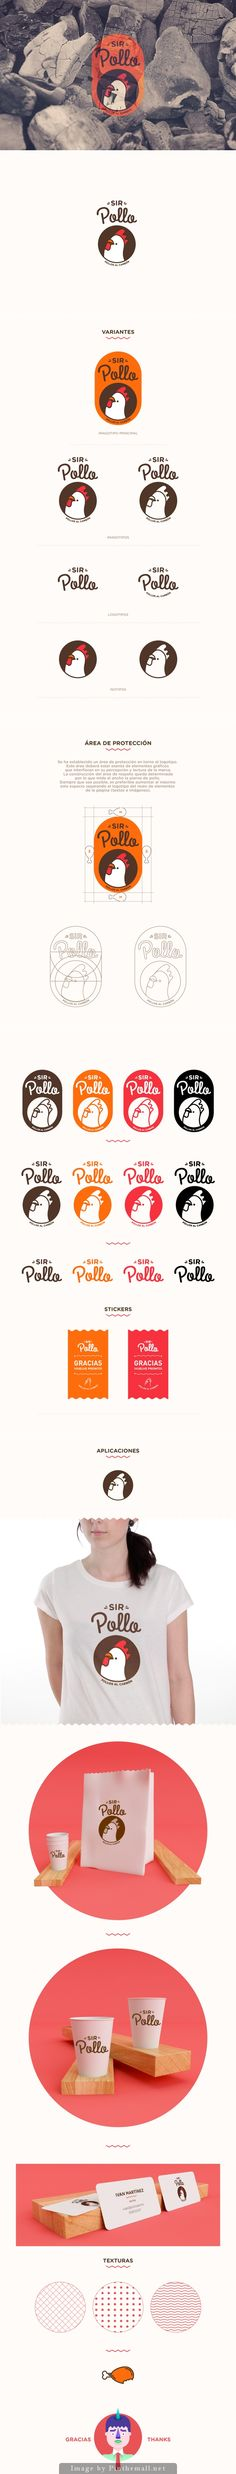 SIR POLLO by AARON MARTINEZ, via Behance has a cute logo on the packaging PD / logo / identity / fun / bright orange and red / illustration / chicken / animal 2 Logo, Typography Logo, Logo Branding, Typography Design, Lettering, Corporate Design, Brand Identity Design, Graphic Design Branding, Stationery Design